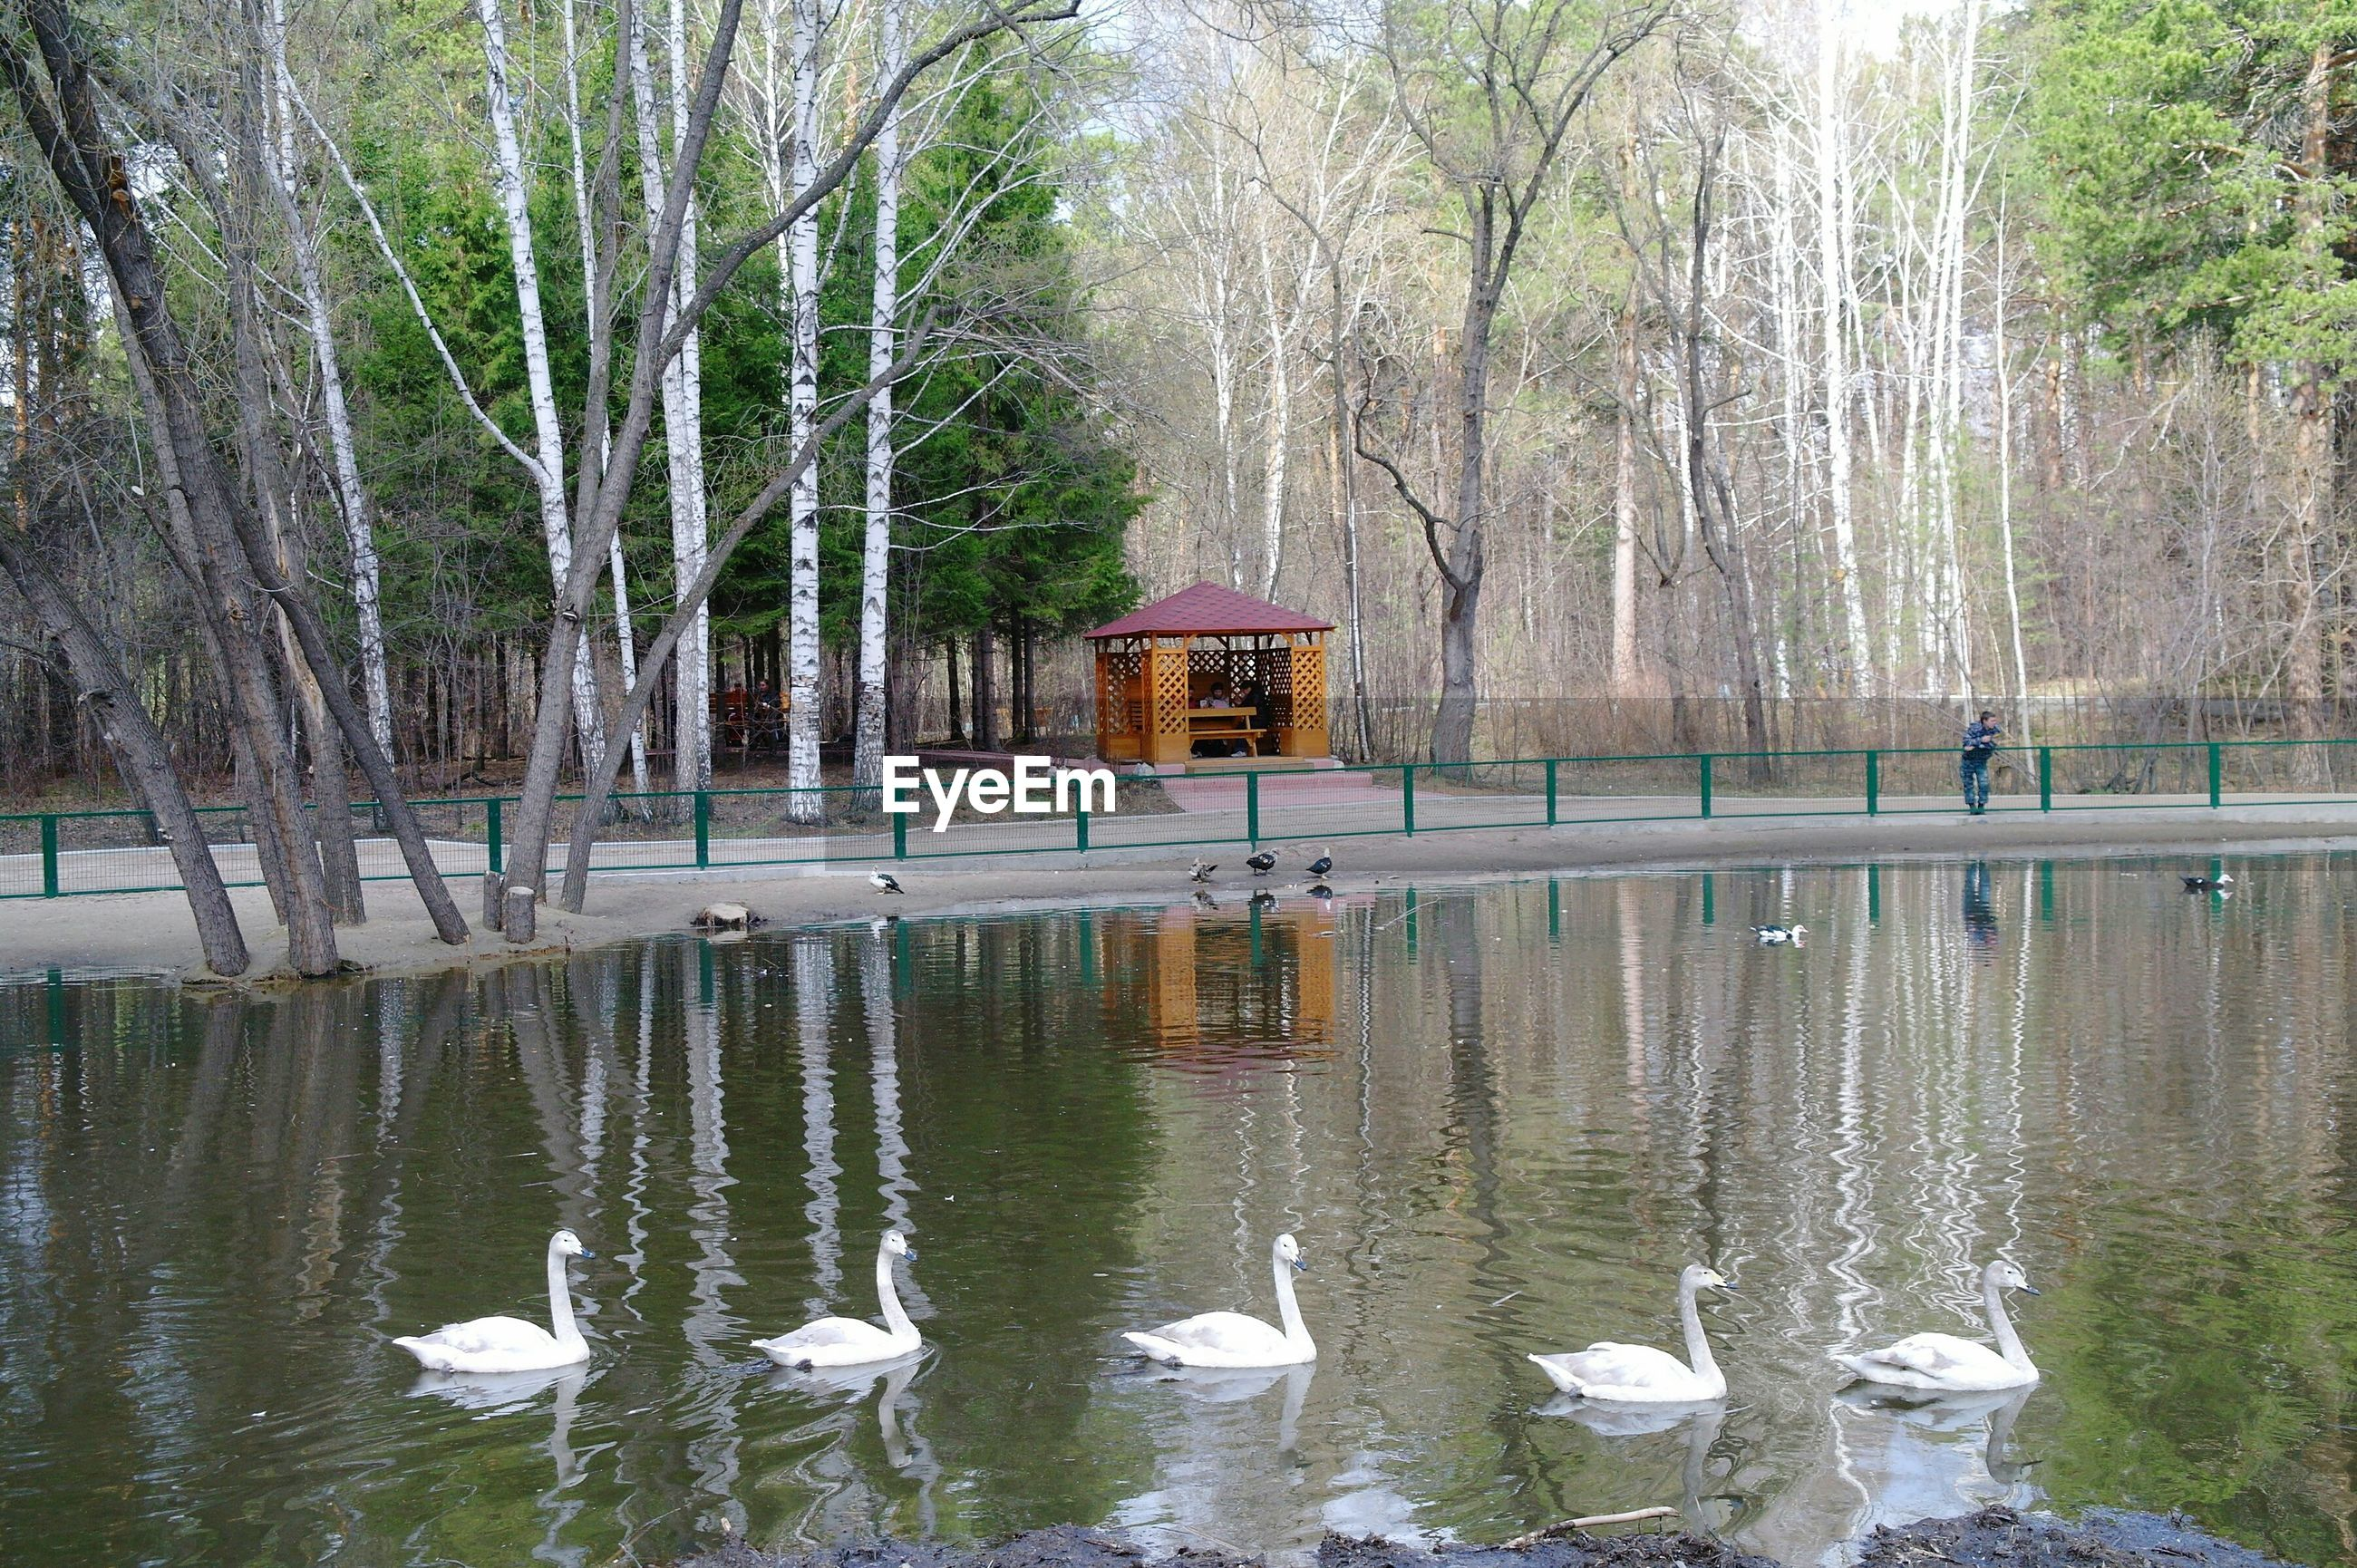 View of swan in lake at forest